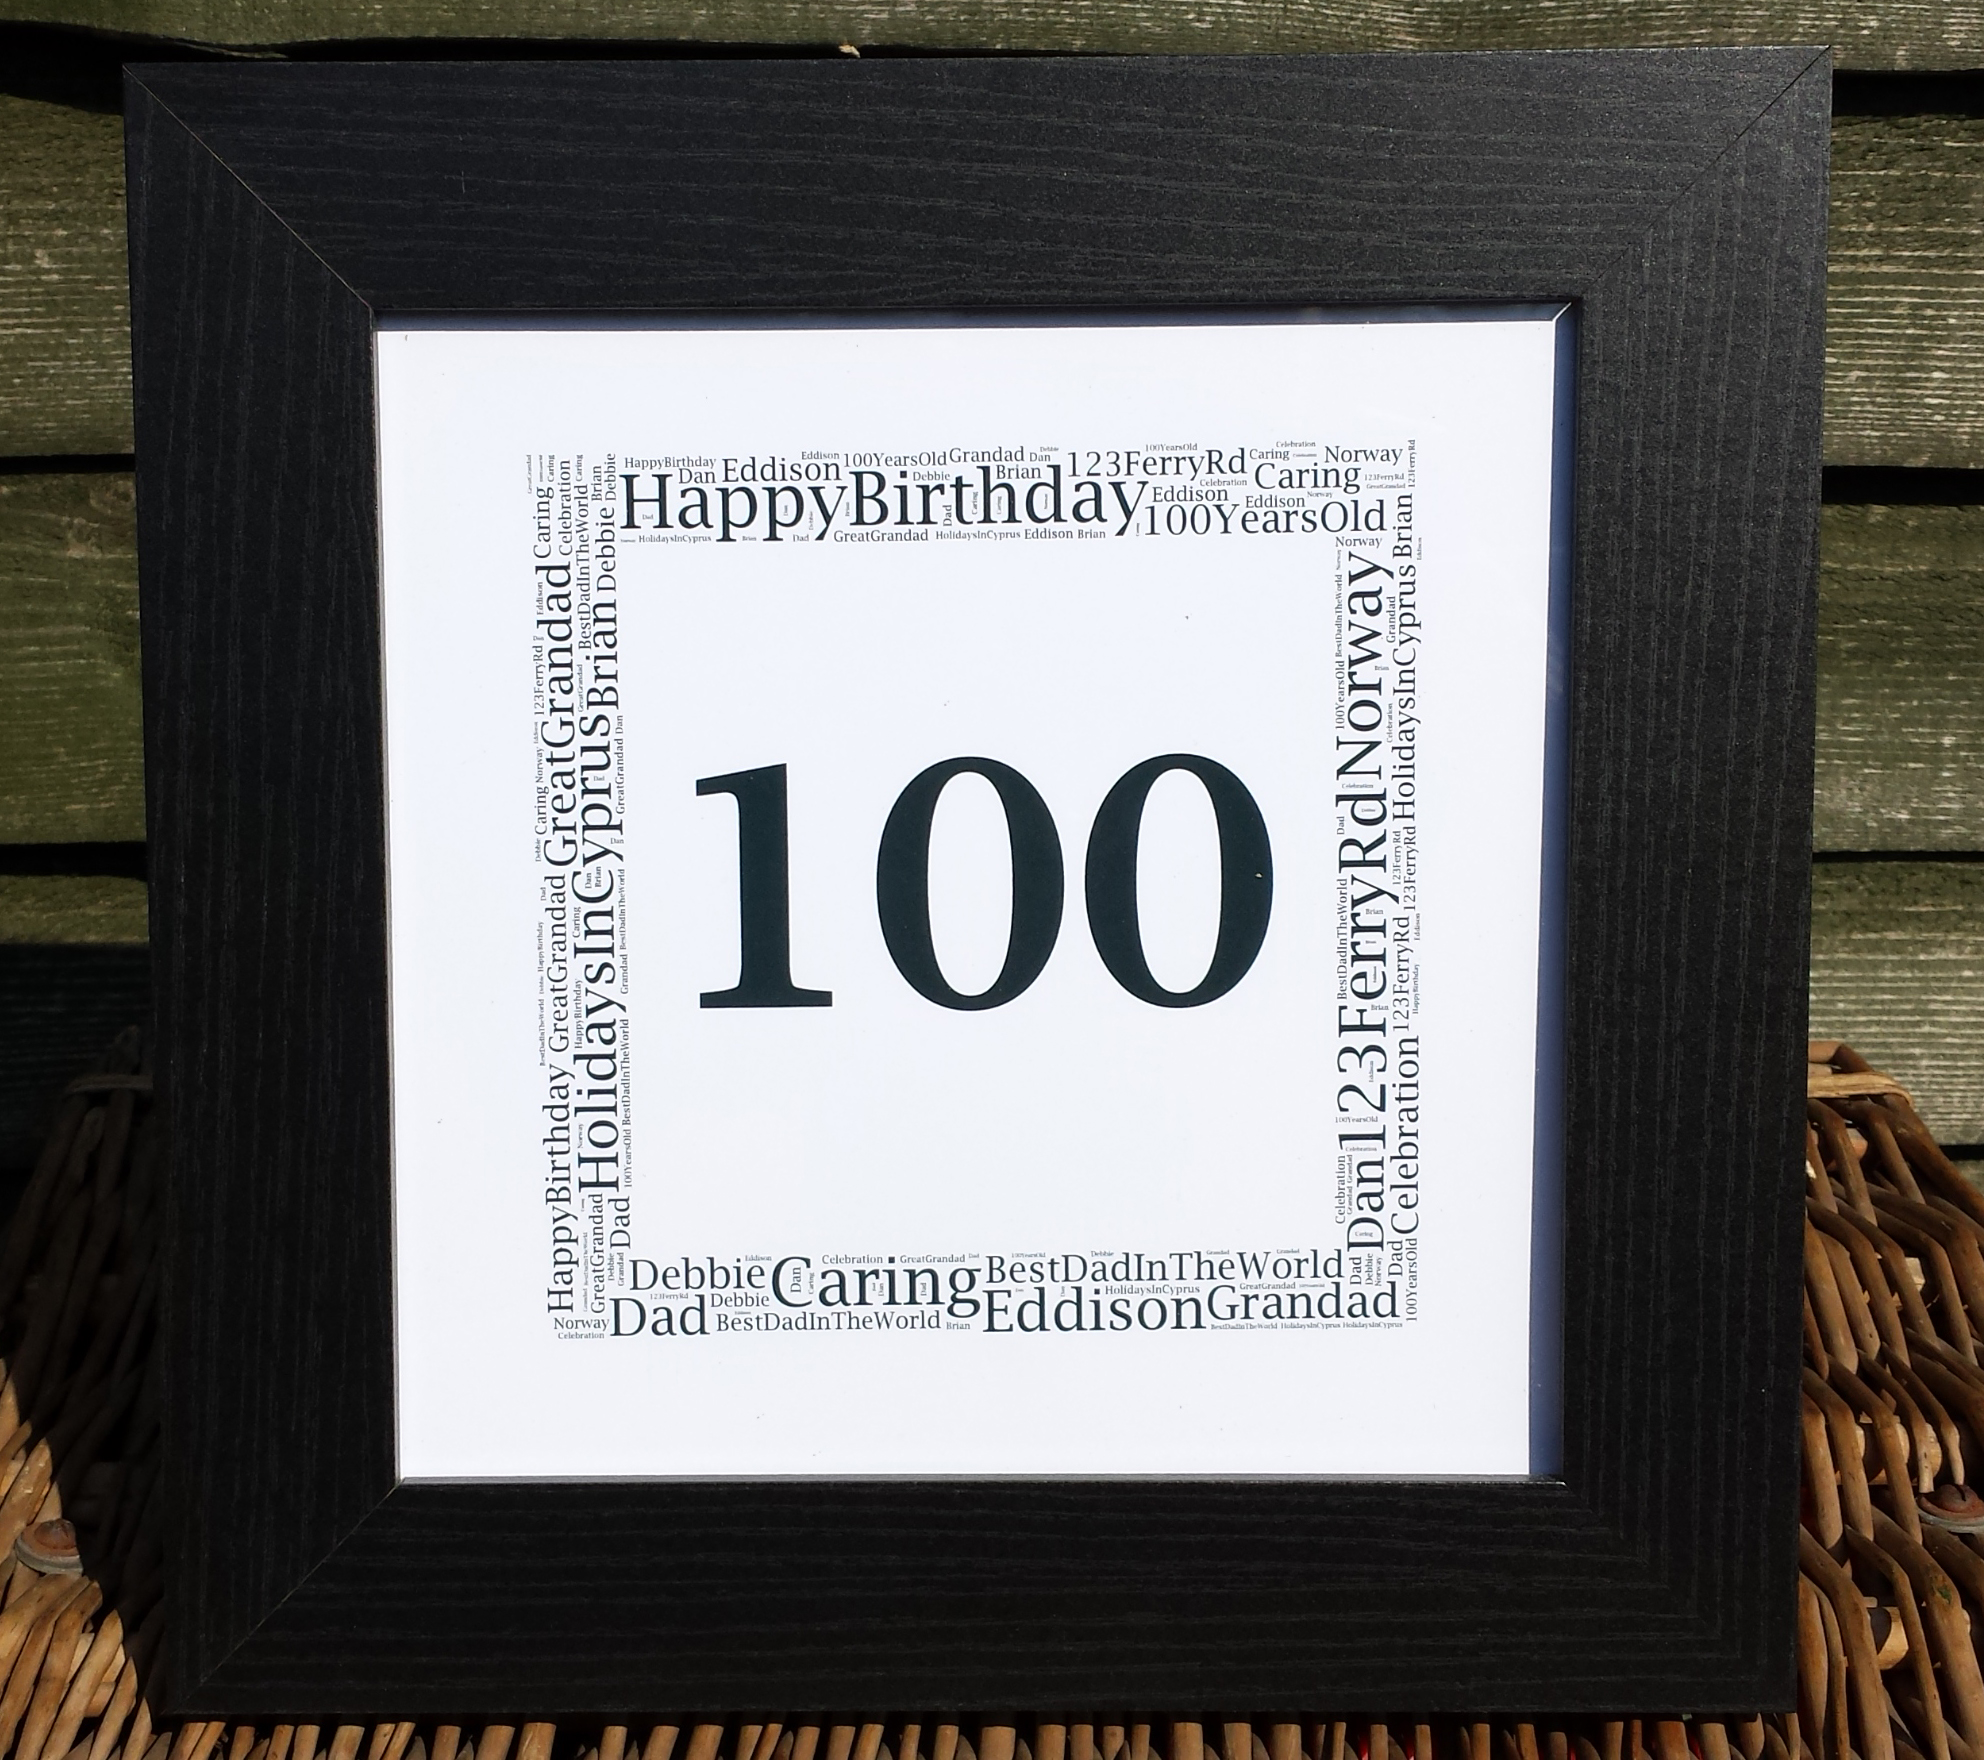 100th Birthday Word Art Frame in a black frame | MadeAt94